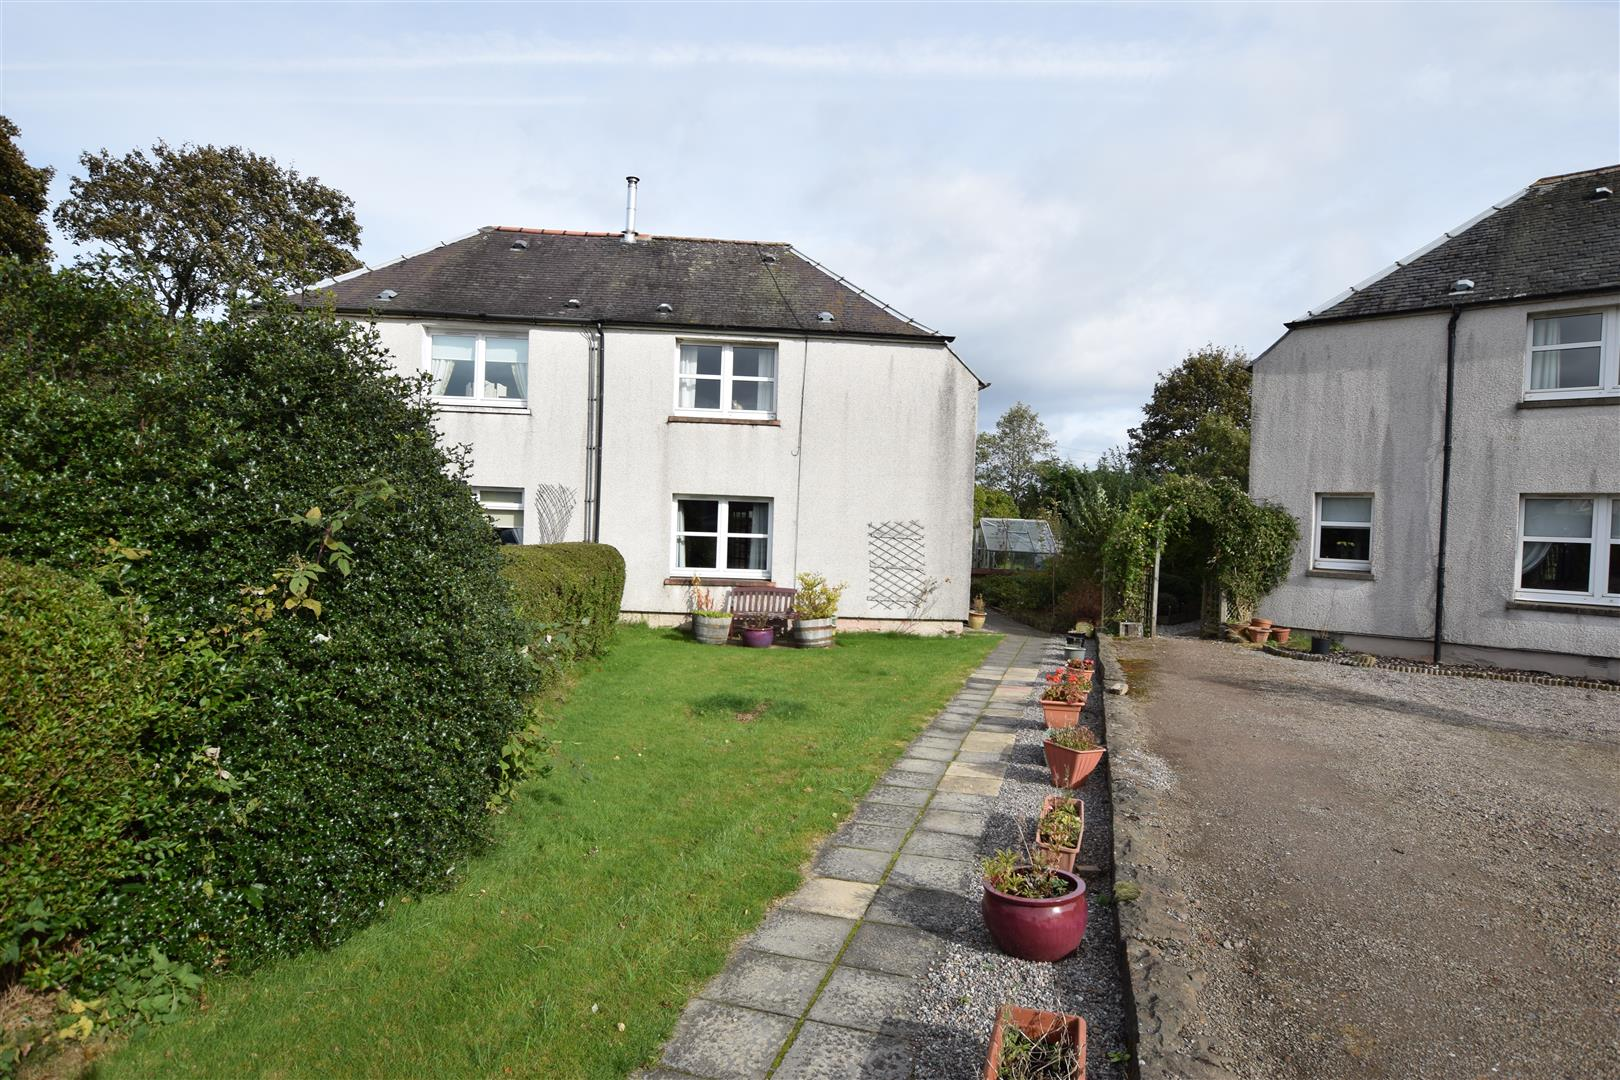 9, Abercairney Place, Blackford, Auchterarder, Perthshire, PH4 1QB, UK